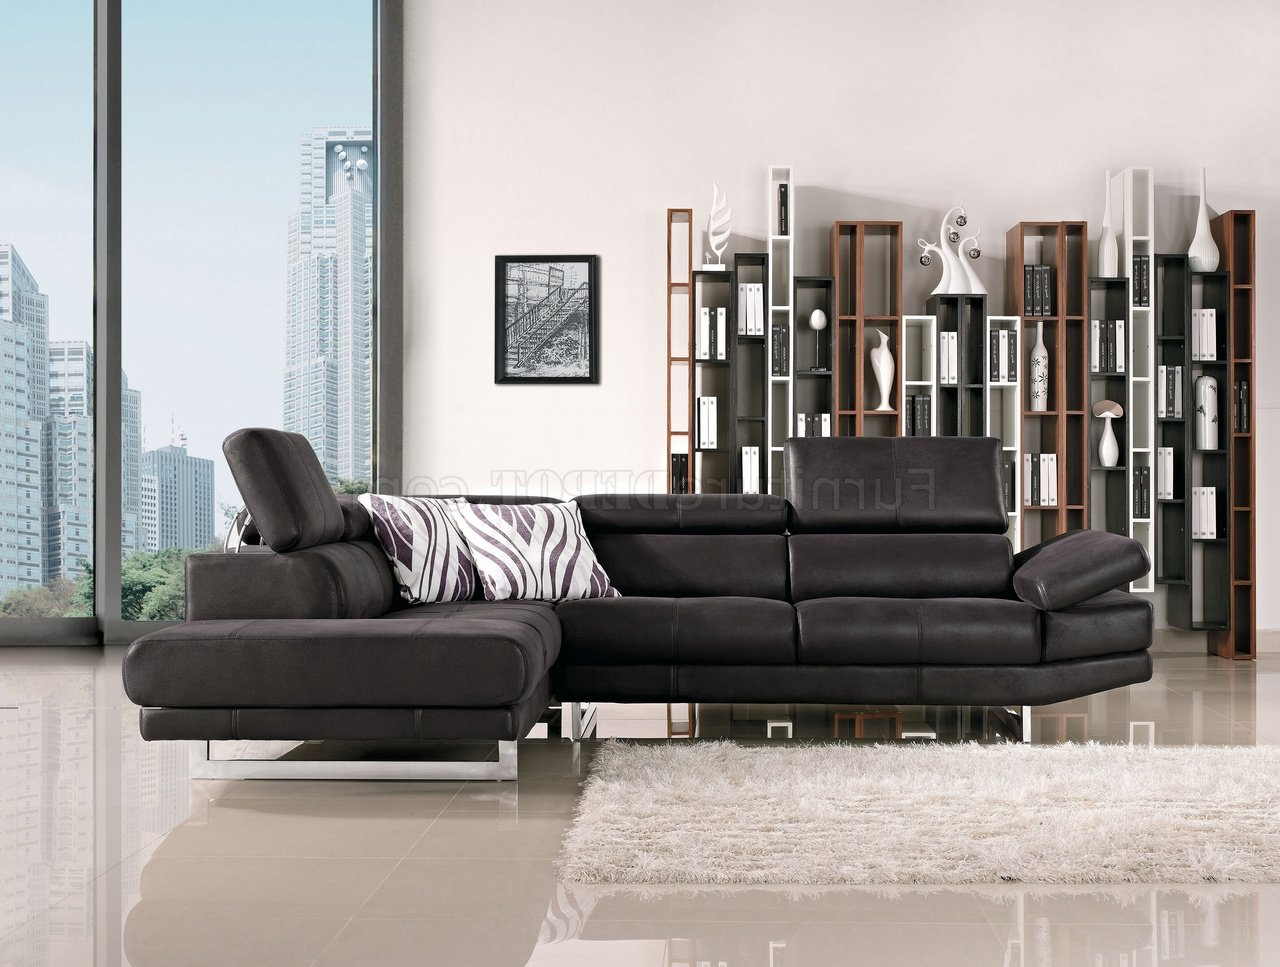 Preferred Black Fabric Modern Sectional Sofa W/adjustable Headrest Throughout Wynne Contemporary Sectional Sofas Black (View 4 of 20)